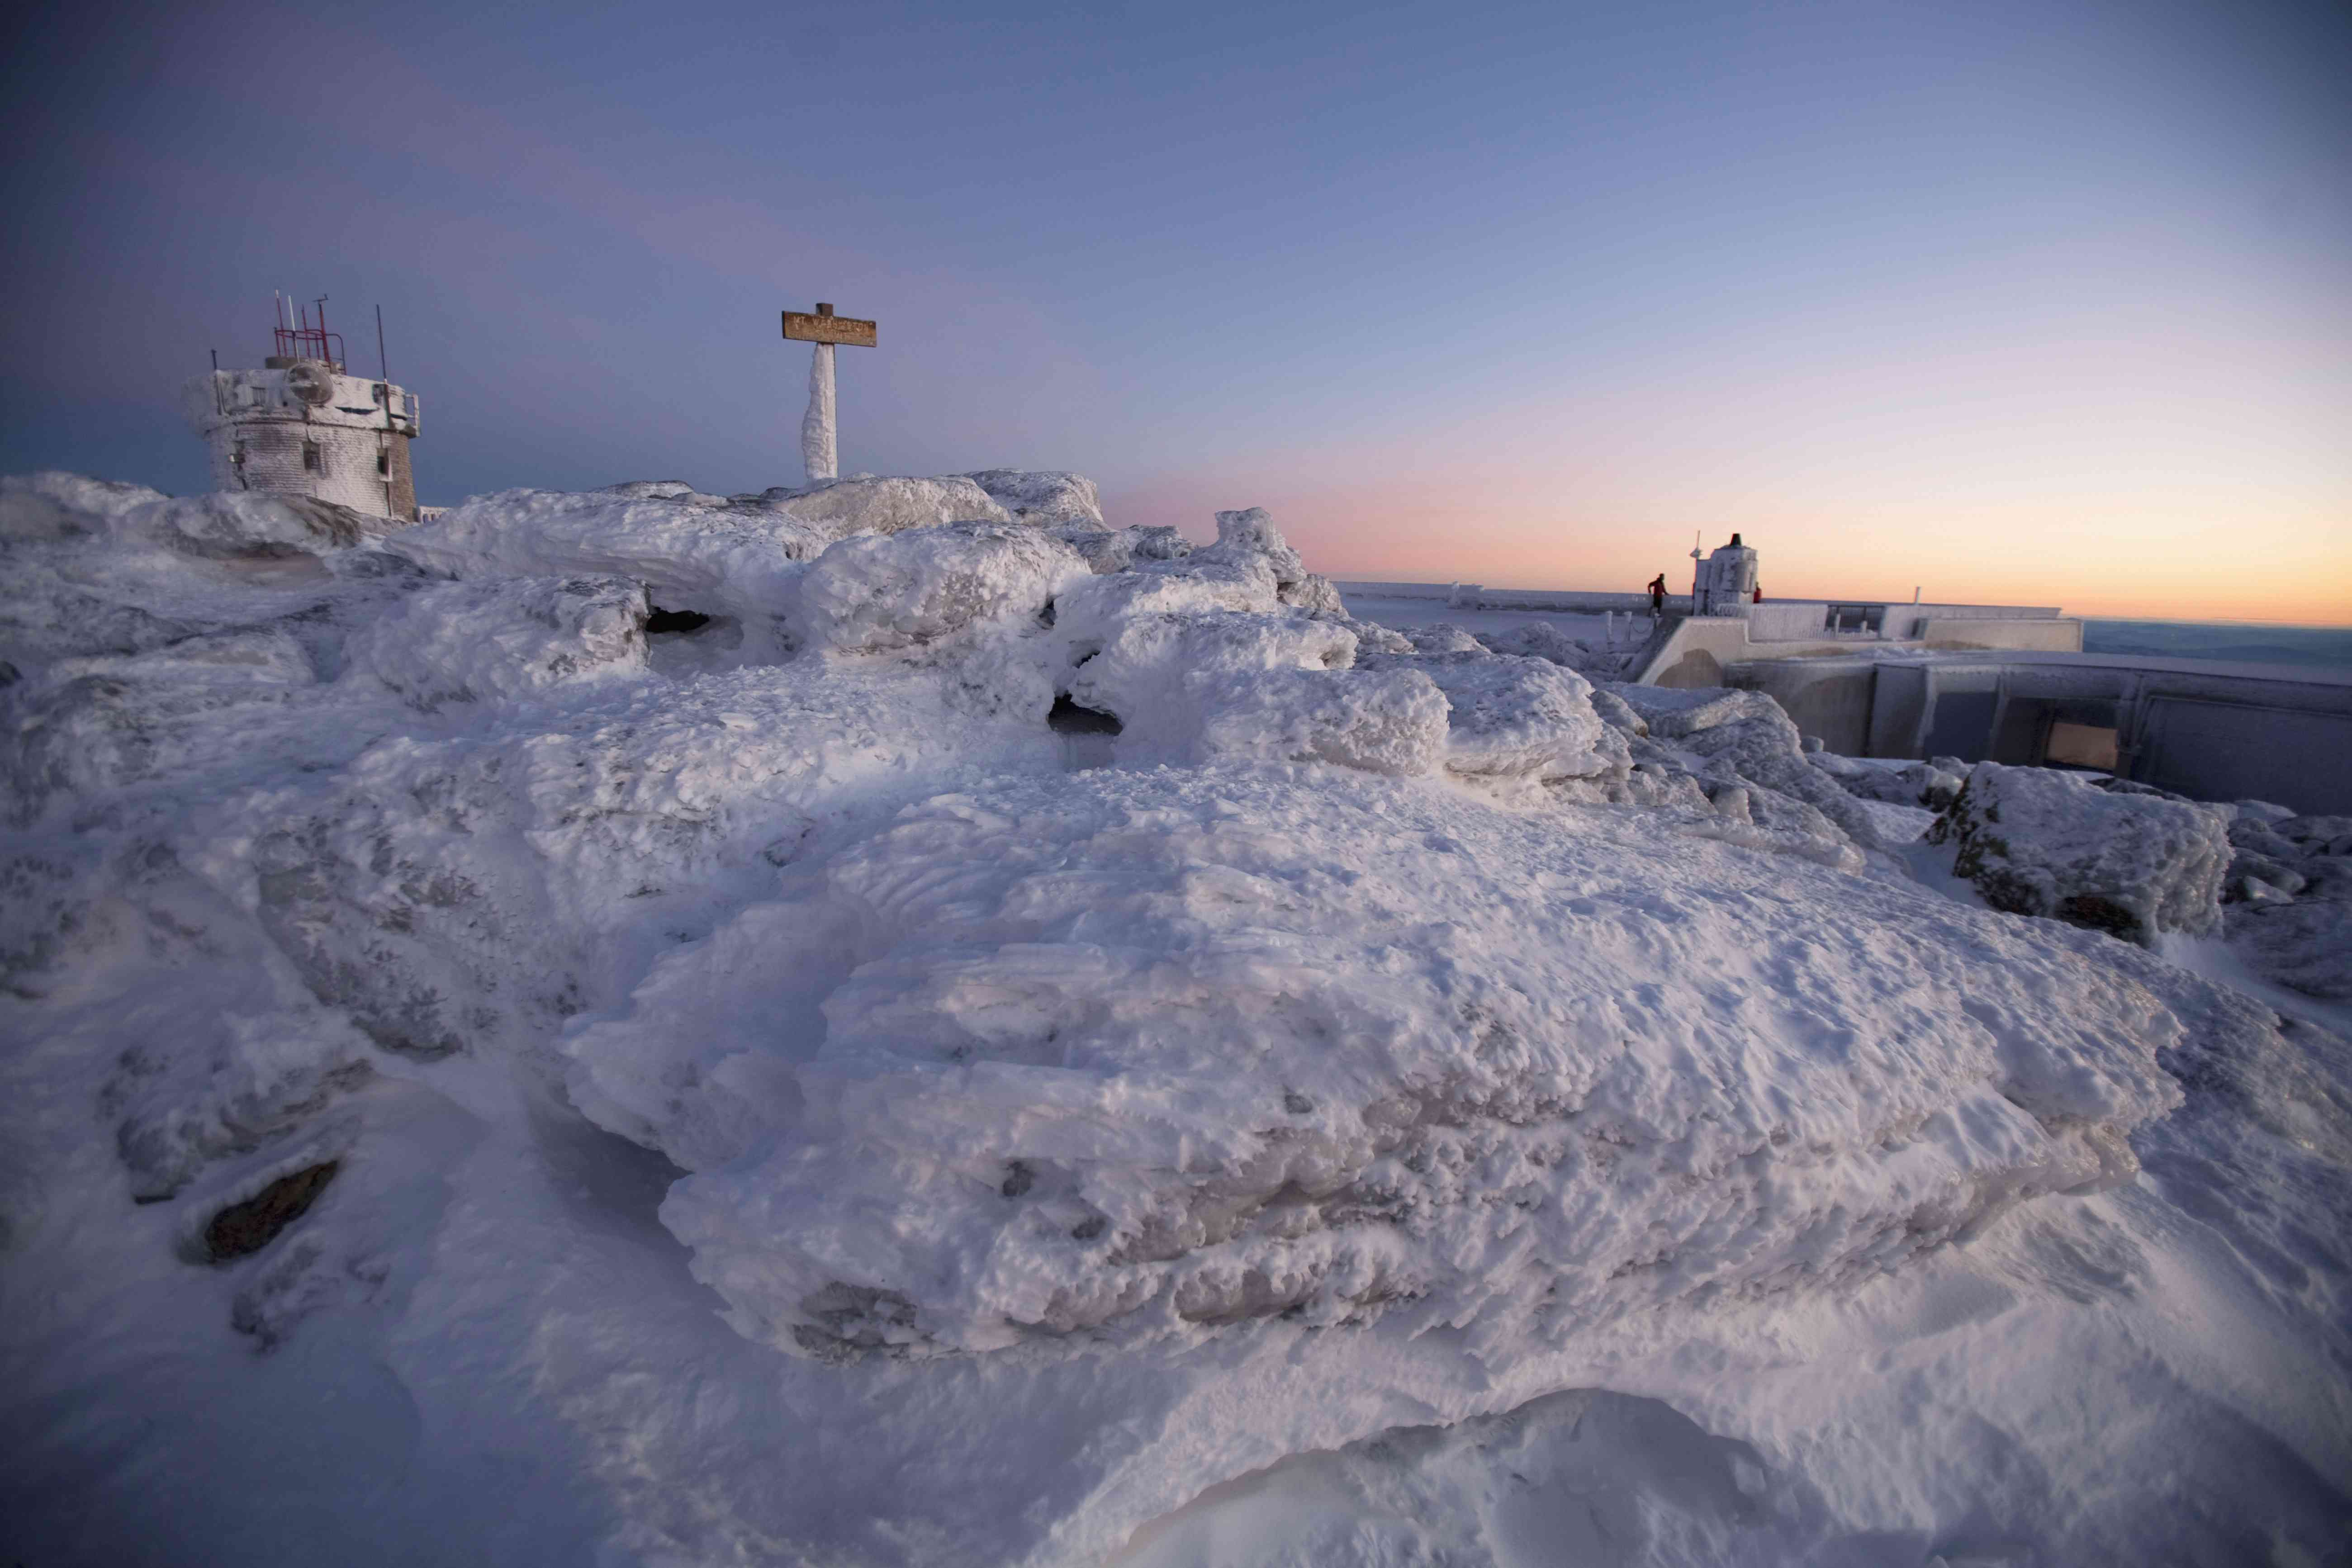 Sunrise on the summit of Mt. Washington, covered in snow